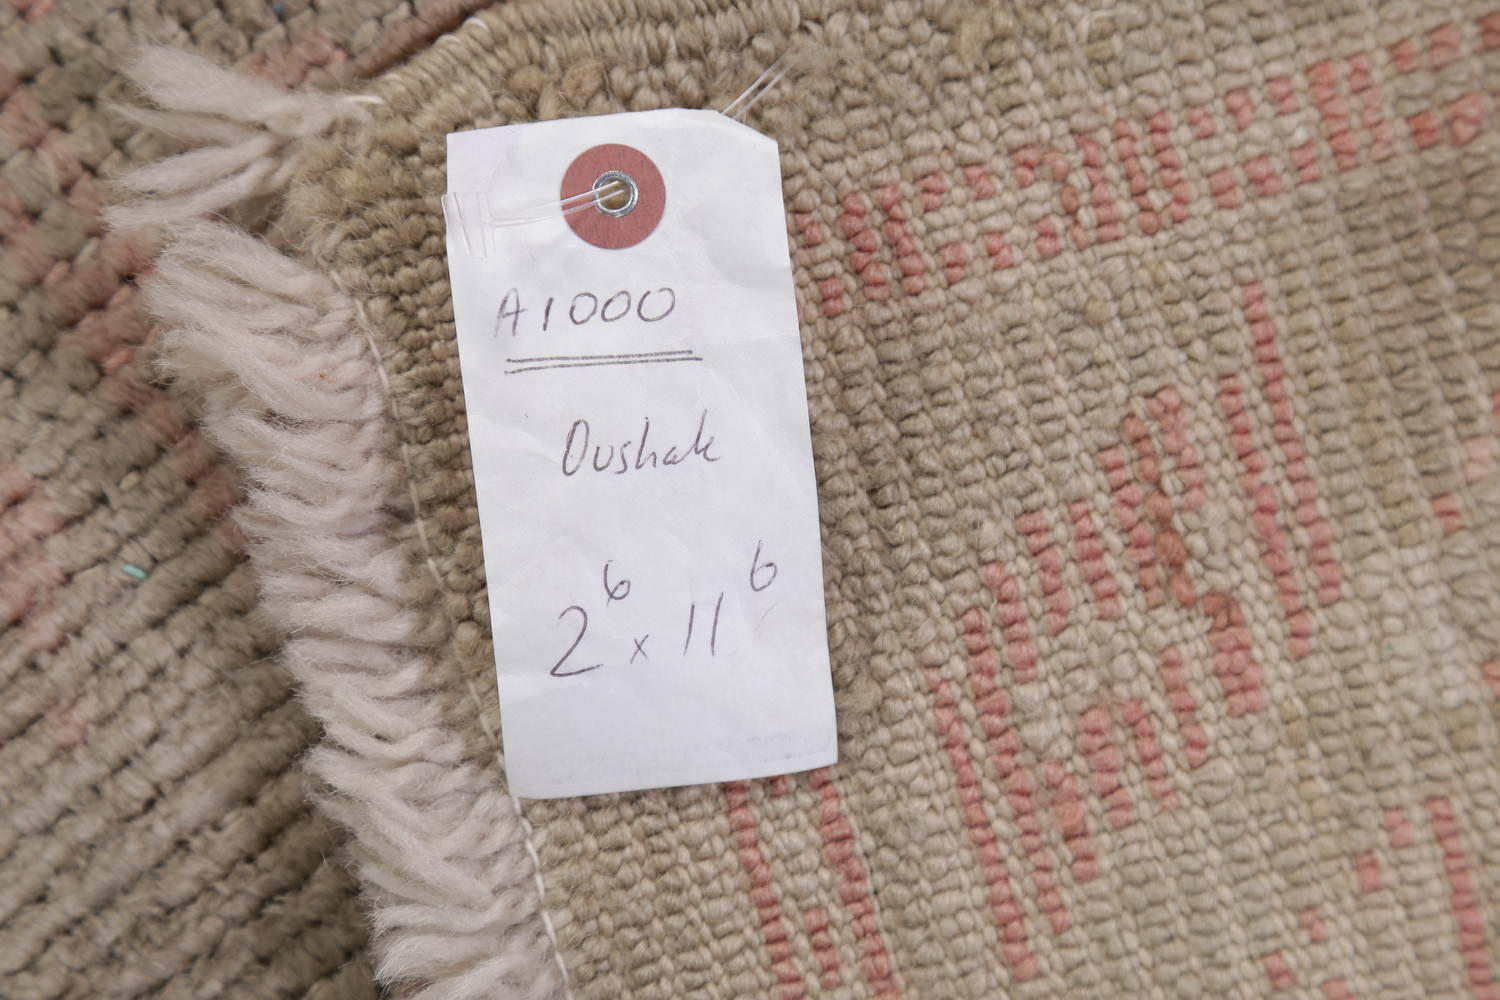 Vegetable Dye Muted Green Oushak Turkish Hand-Knotted Runner Rug 2x12 image 20